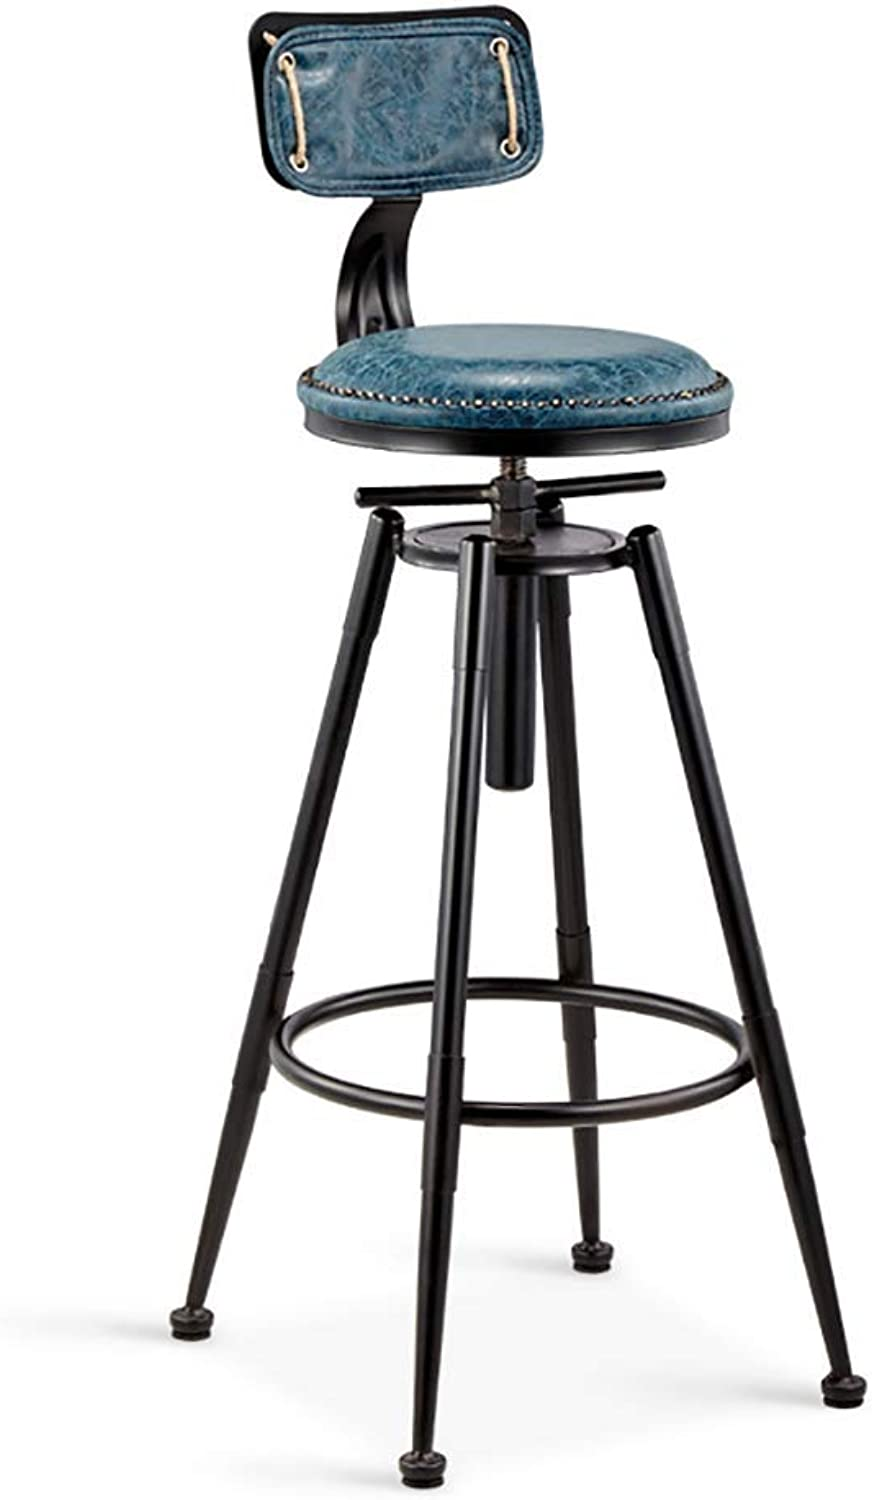 Barstools Bar Stool Retro Nostalgic Lift bar Chair Kitchen, Living Room, Cafe, mall Wrought Iron high Stool (color   B)